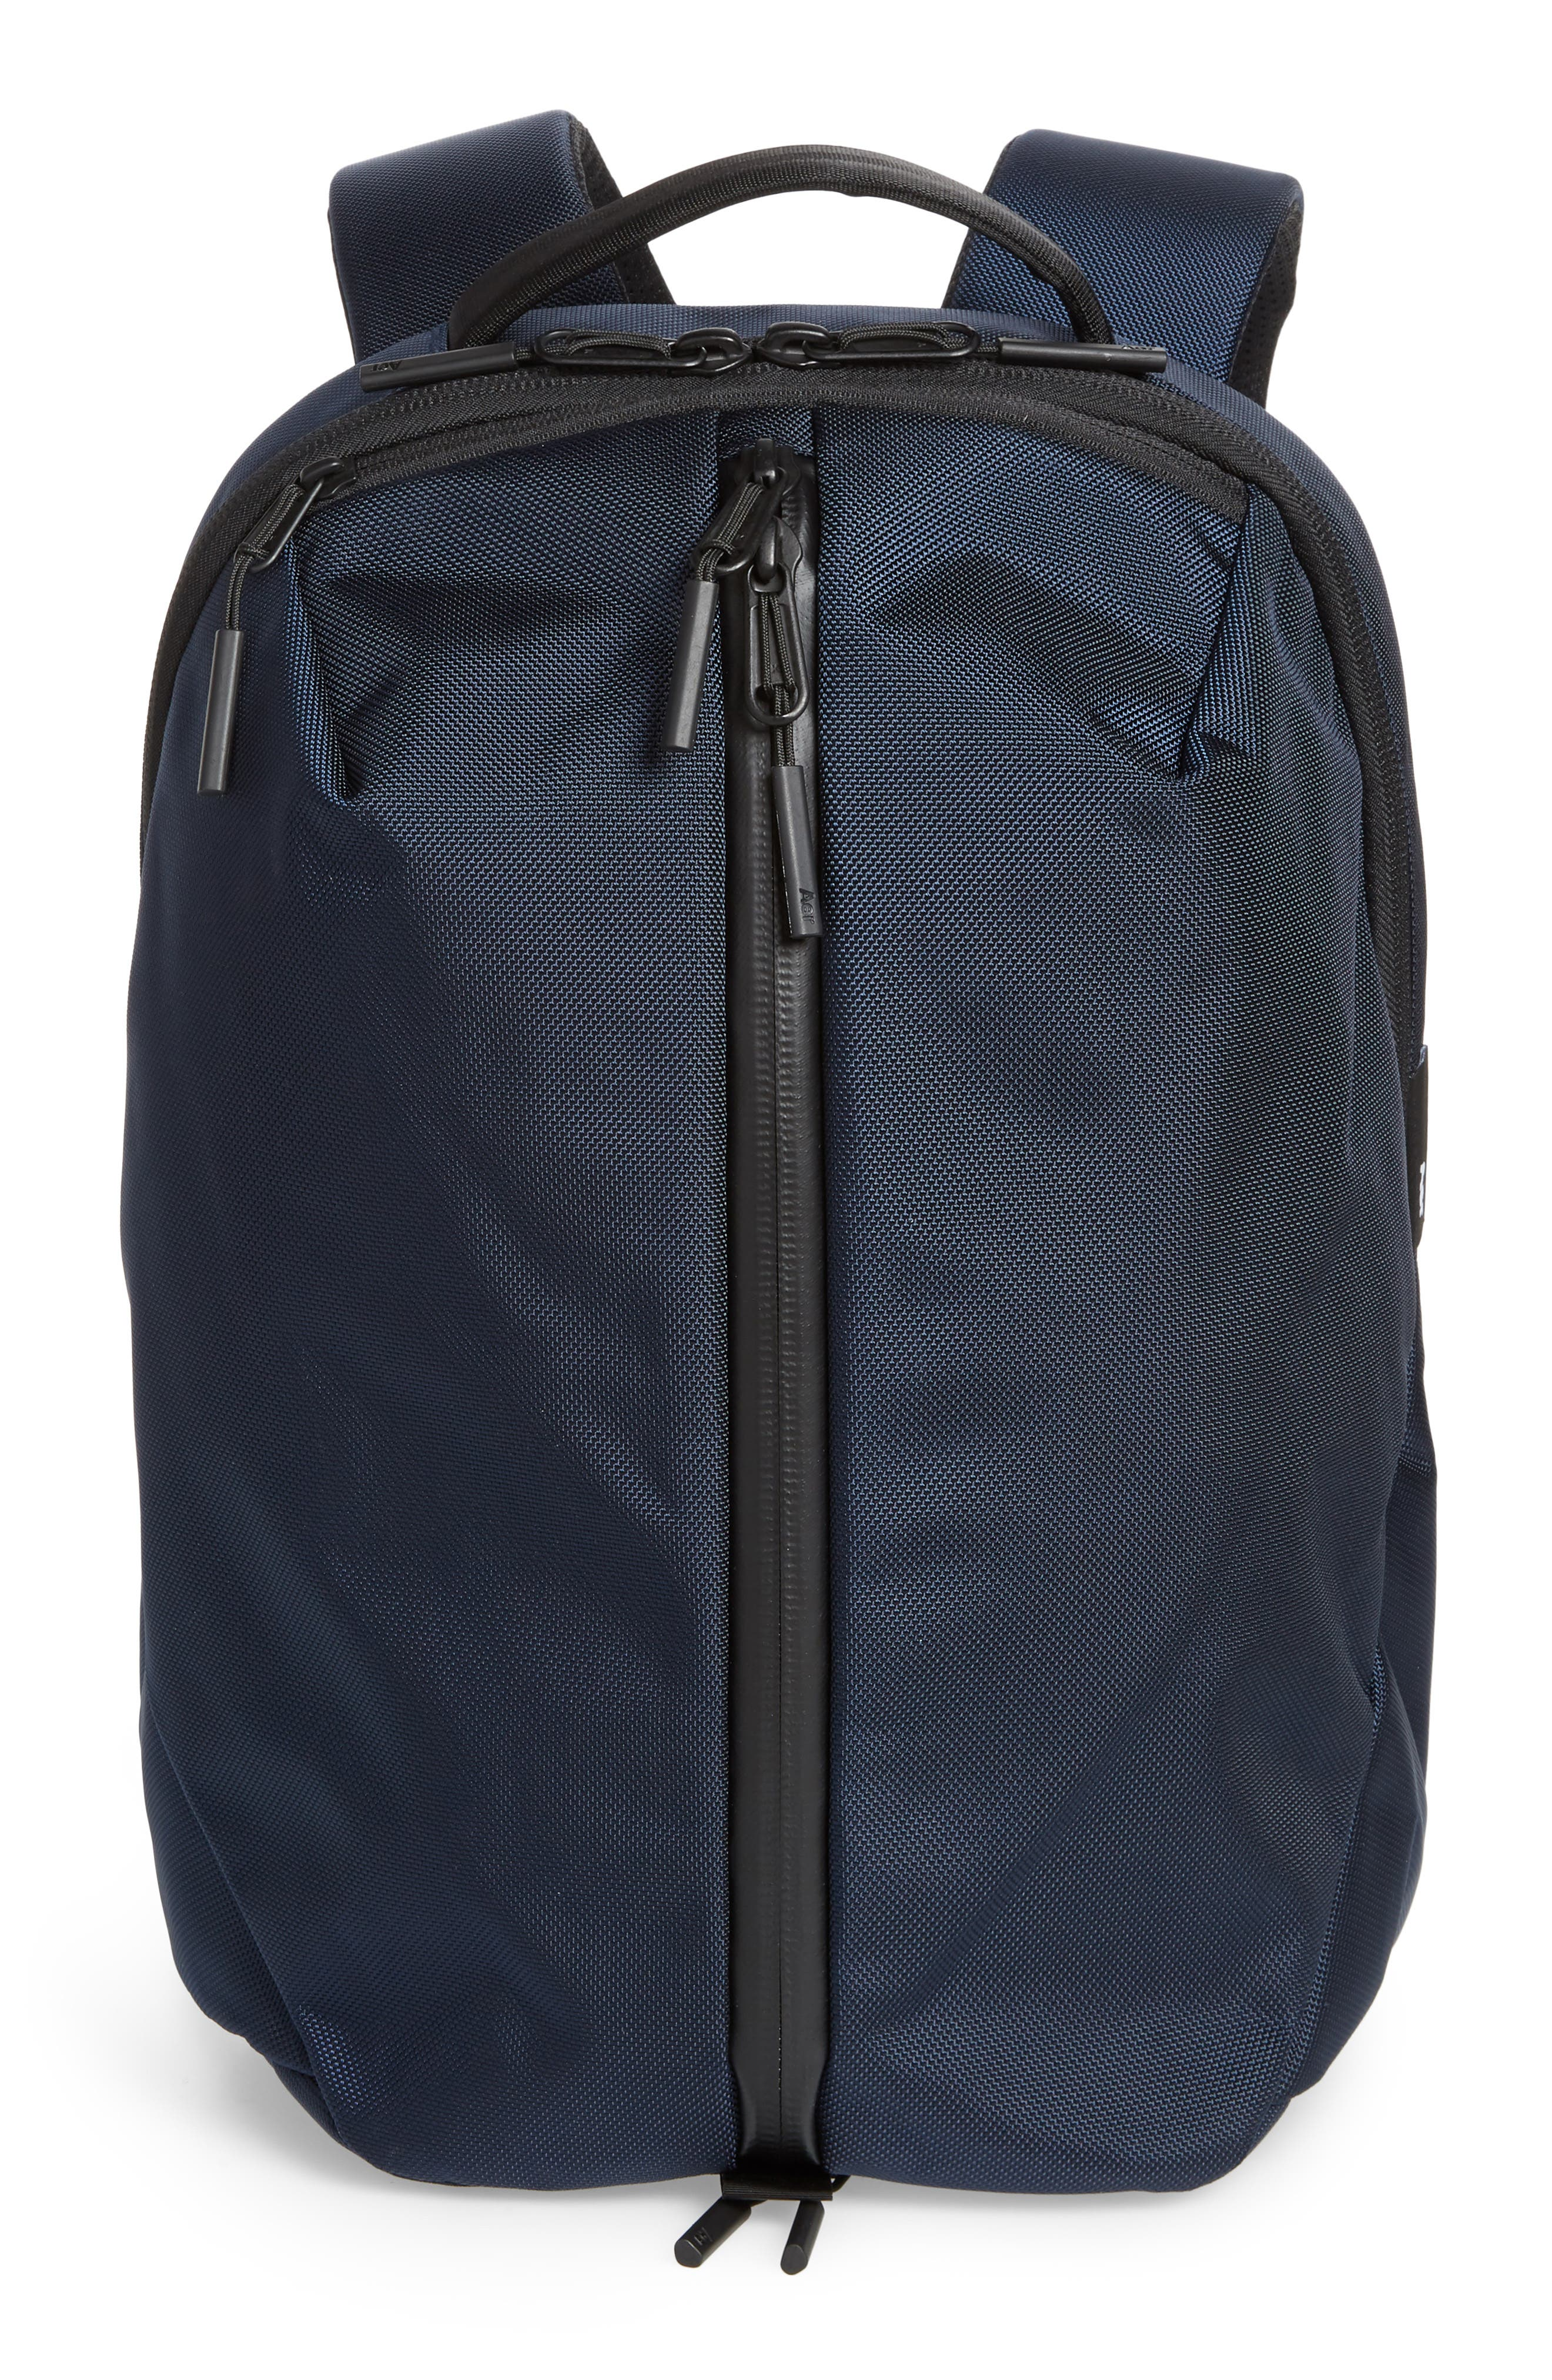 Fit Pack 2 Backpack,                         Main,                         color, Navy